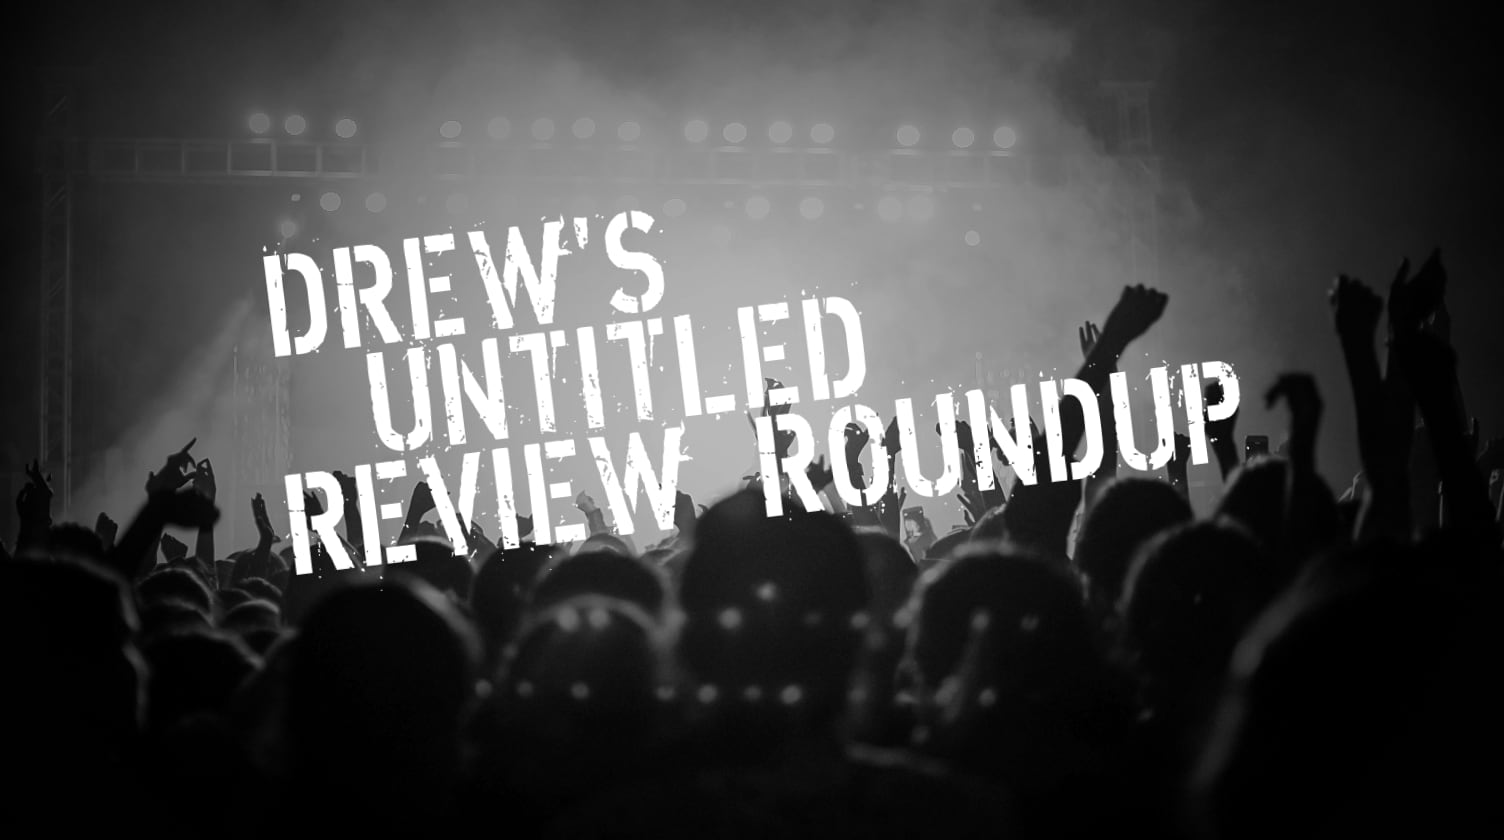 Drew's Untitled Review Roundup